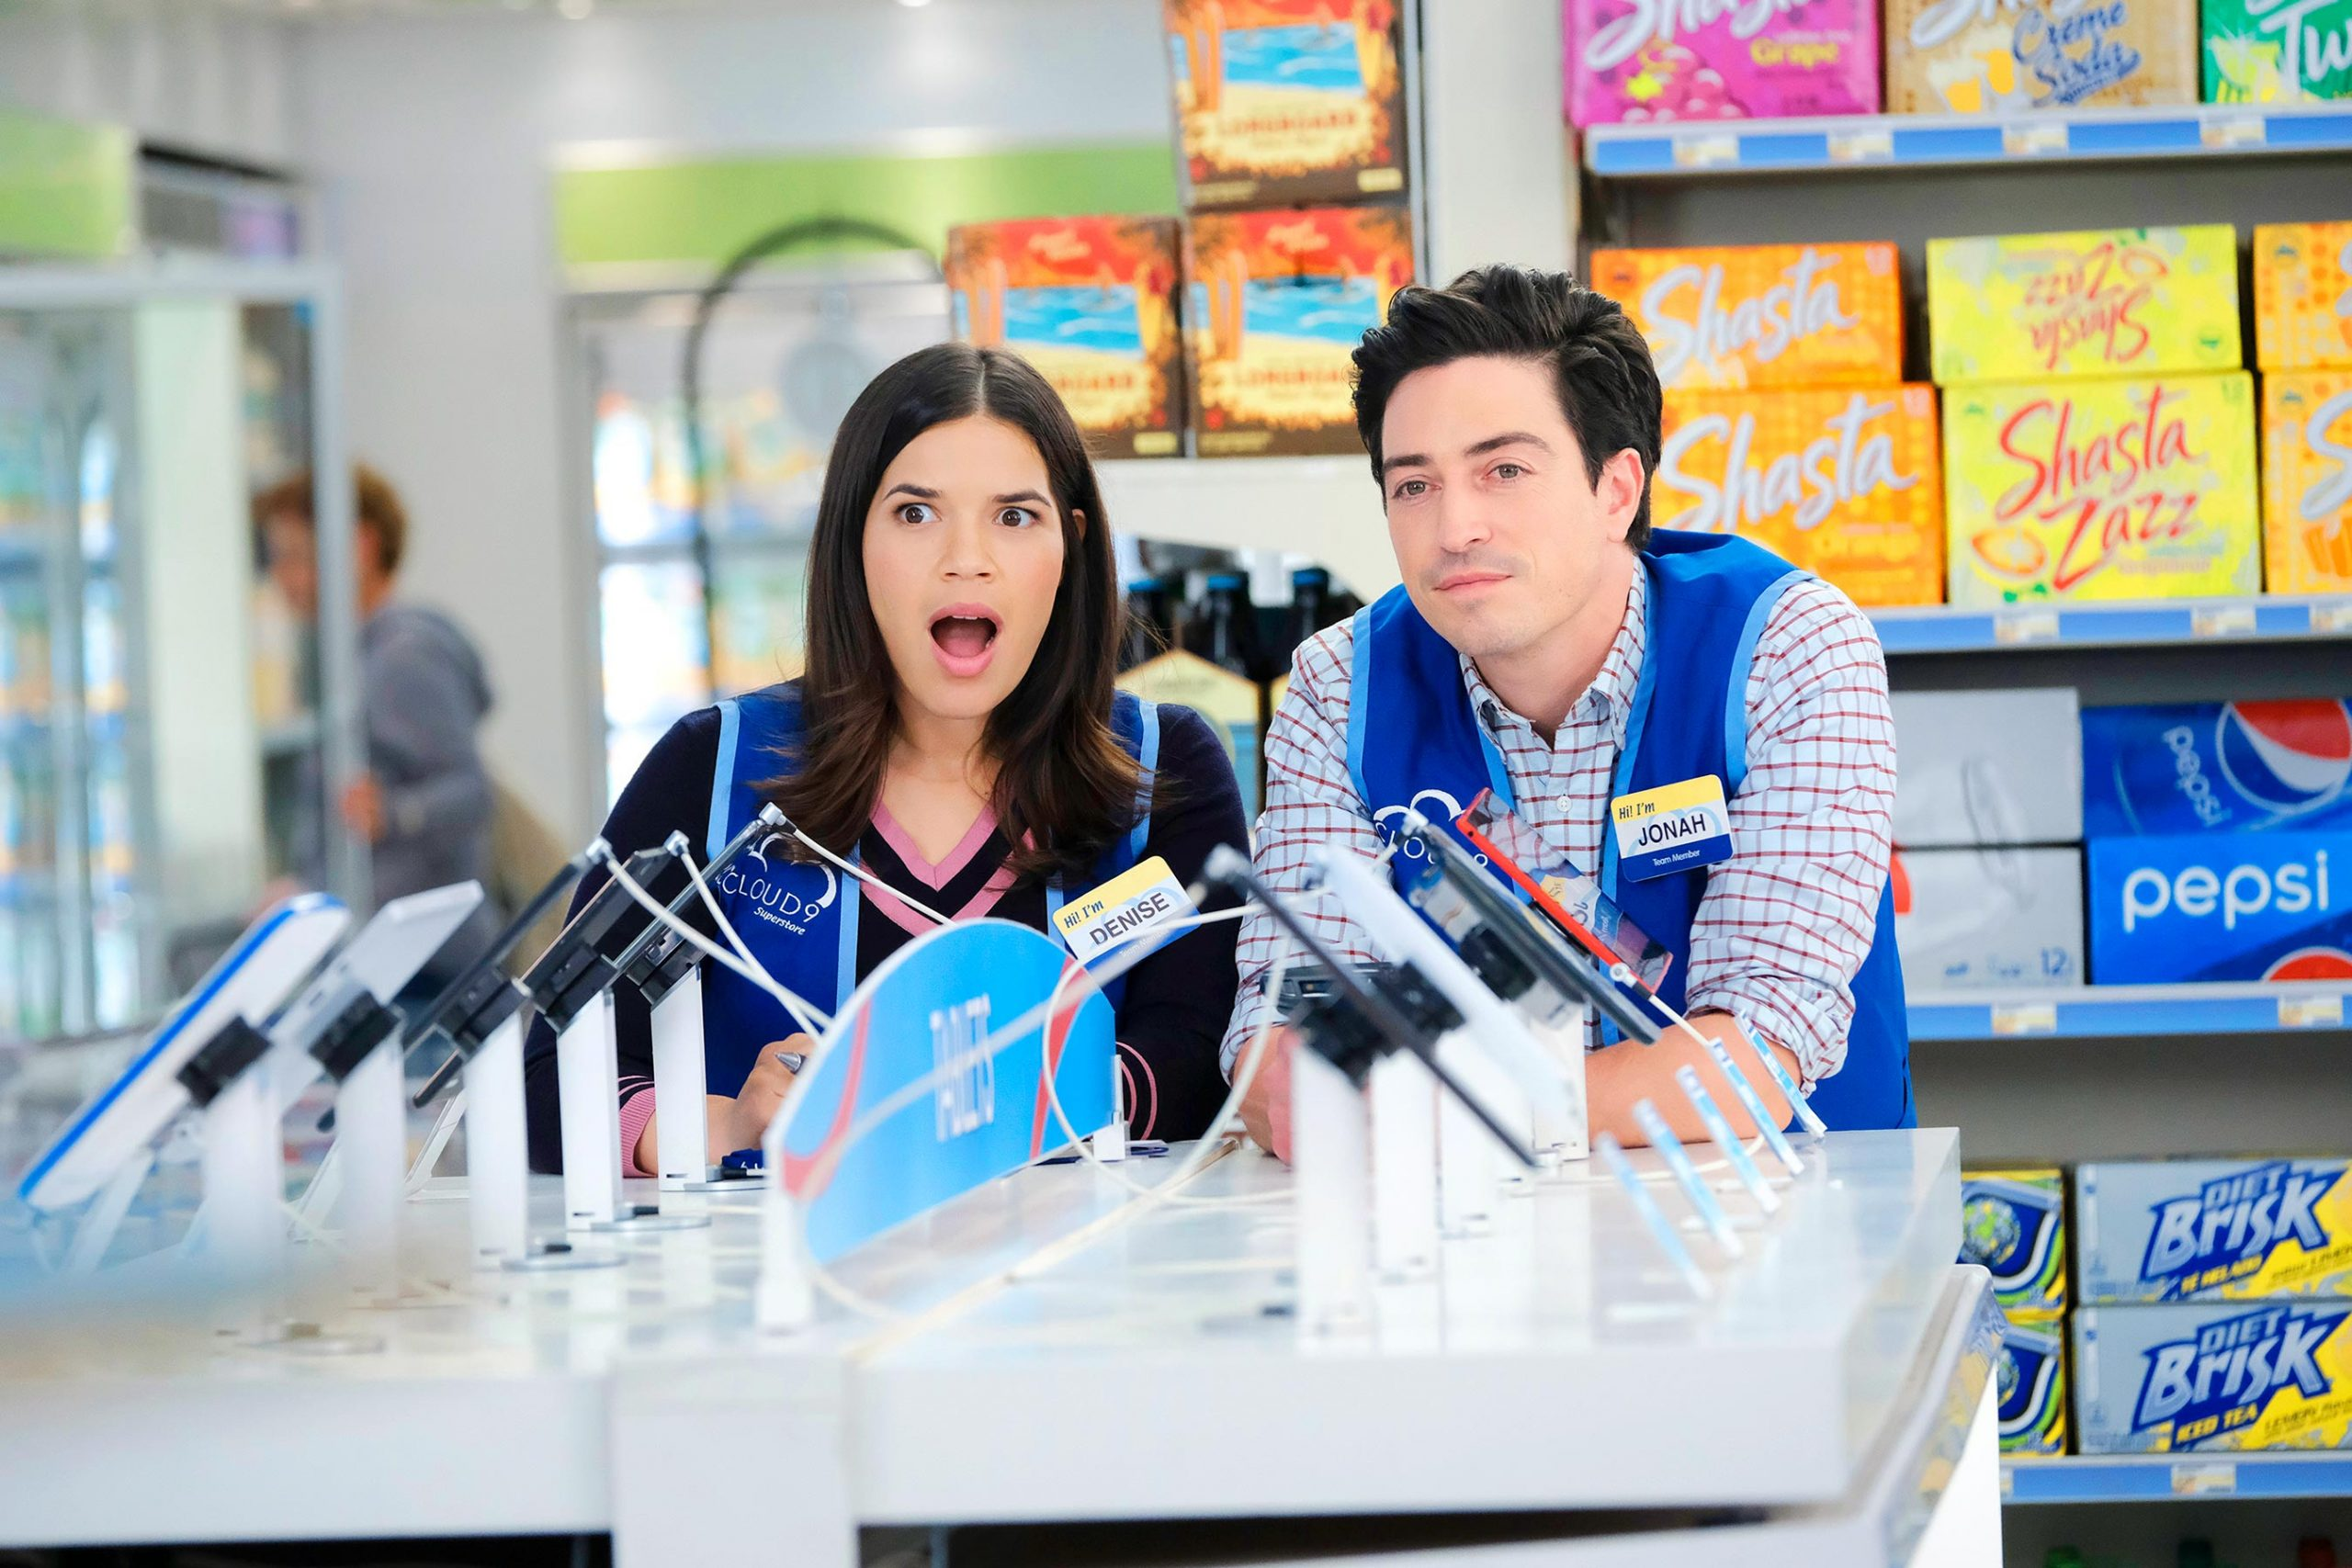 Superstore season 5 episode 21 finale.